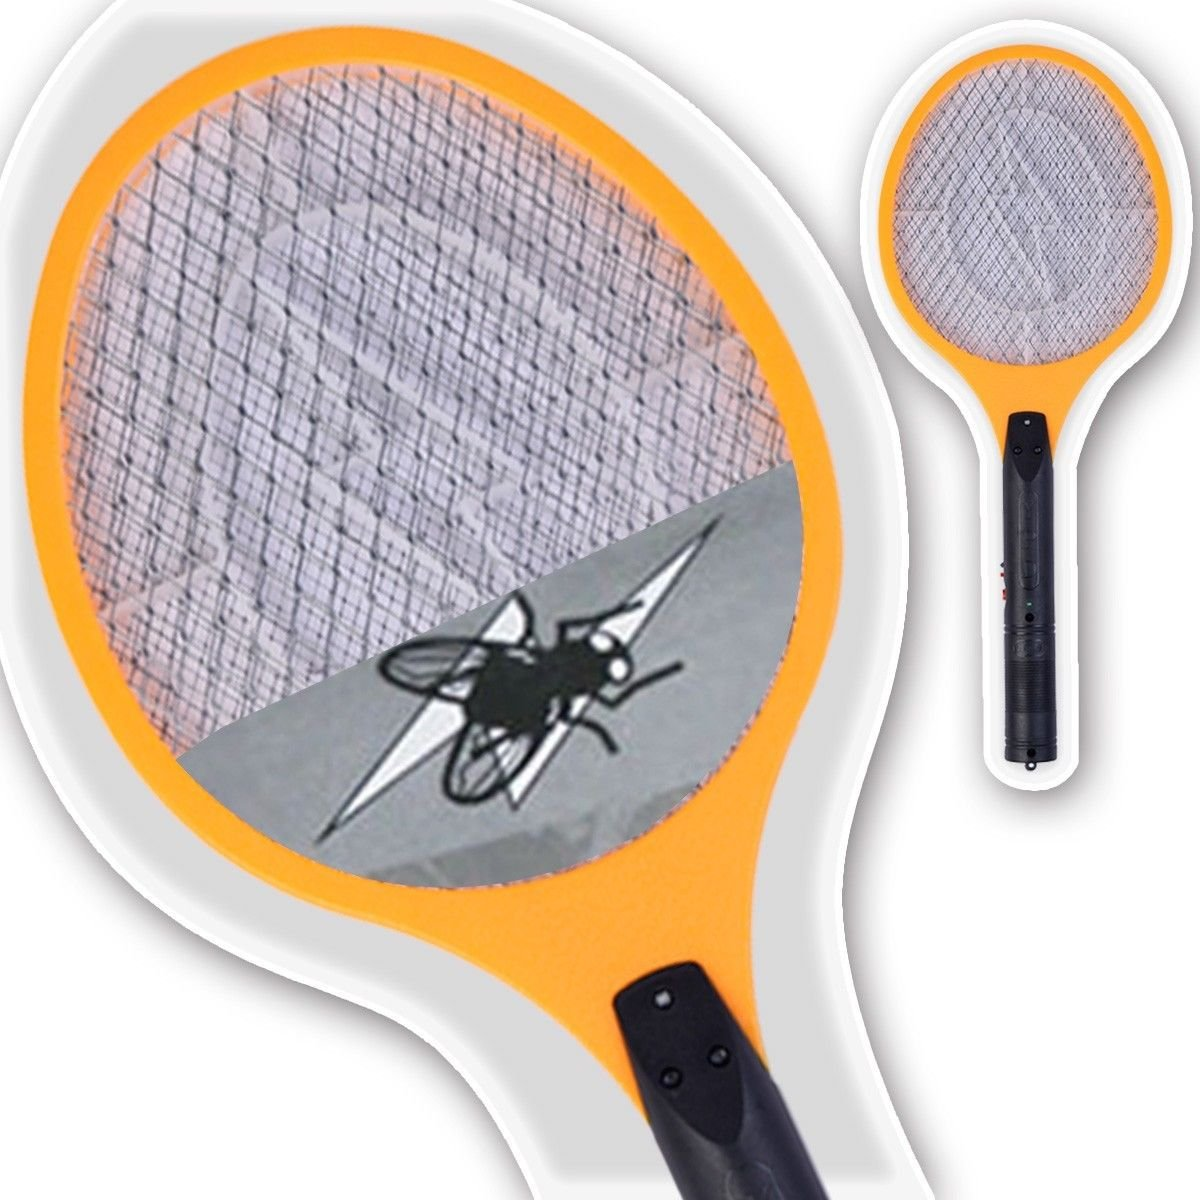 Electric Swatter Racket Mosquito Rechargeable Image 3